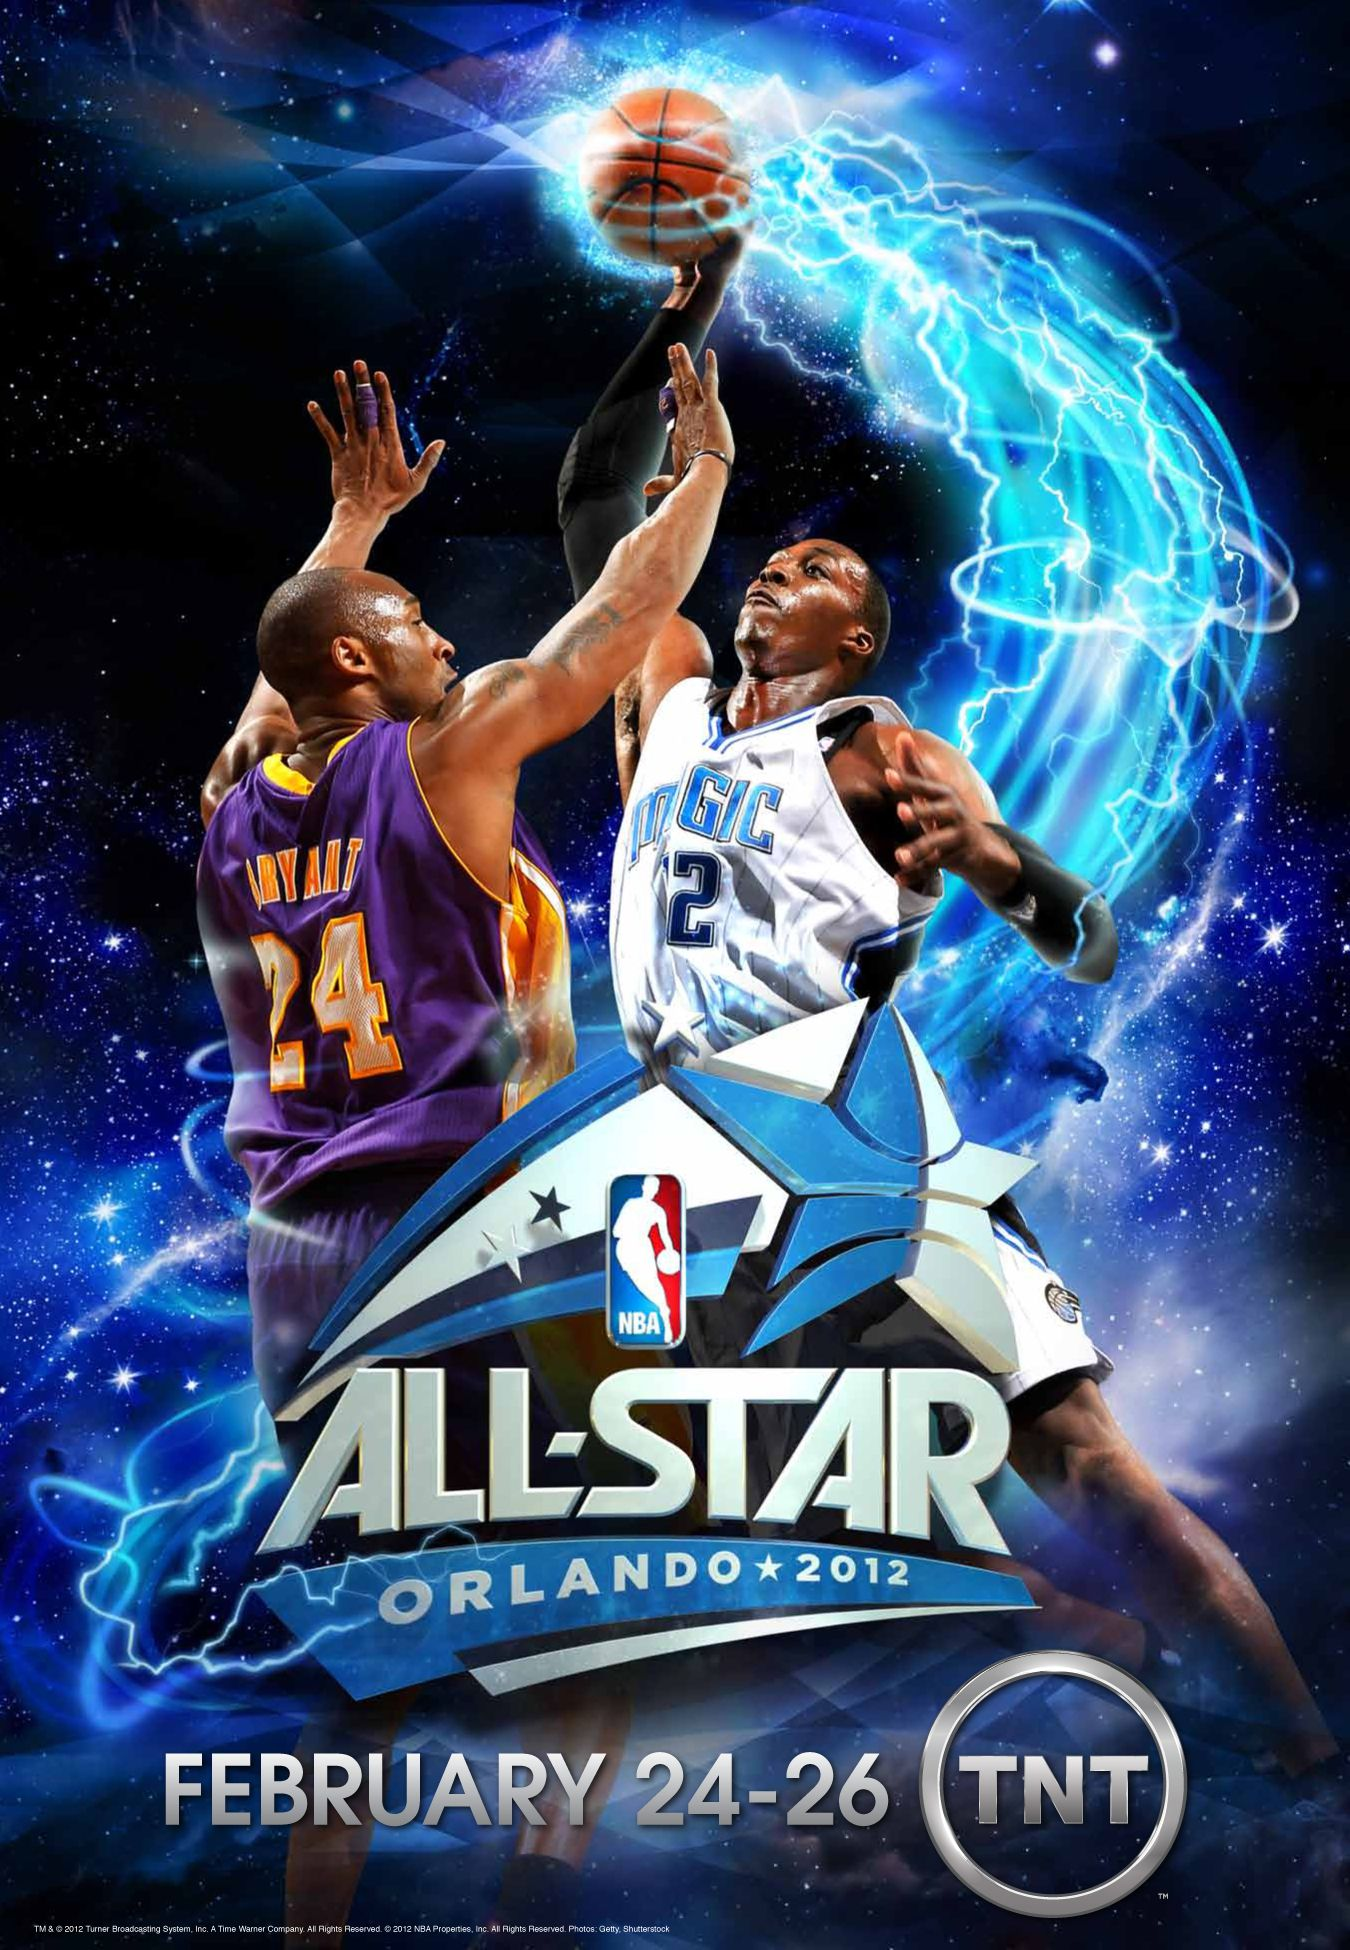 Sports Posters Nba Allstar Broadcast On Tnt Posters Creative Services Sports Unit Sport Poster Design Sport Poster Basketball Posters